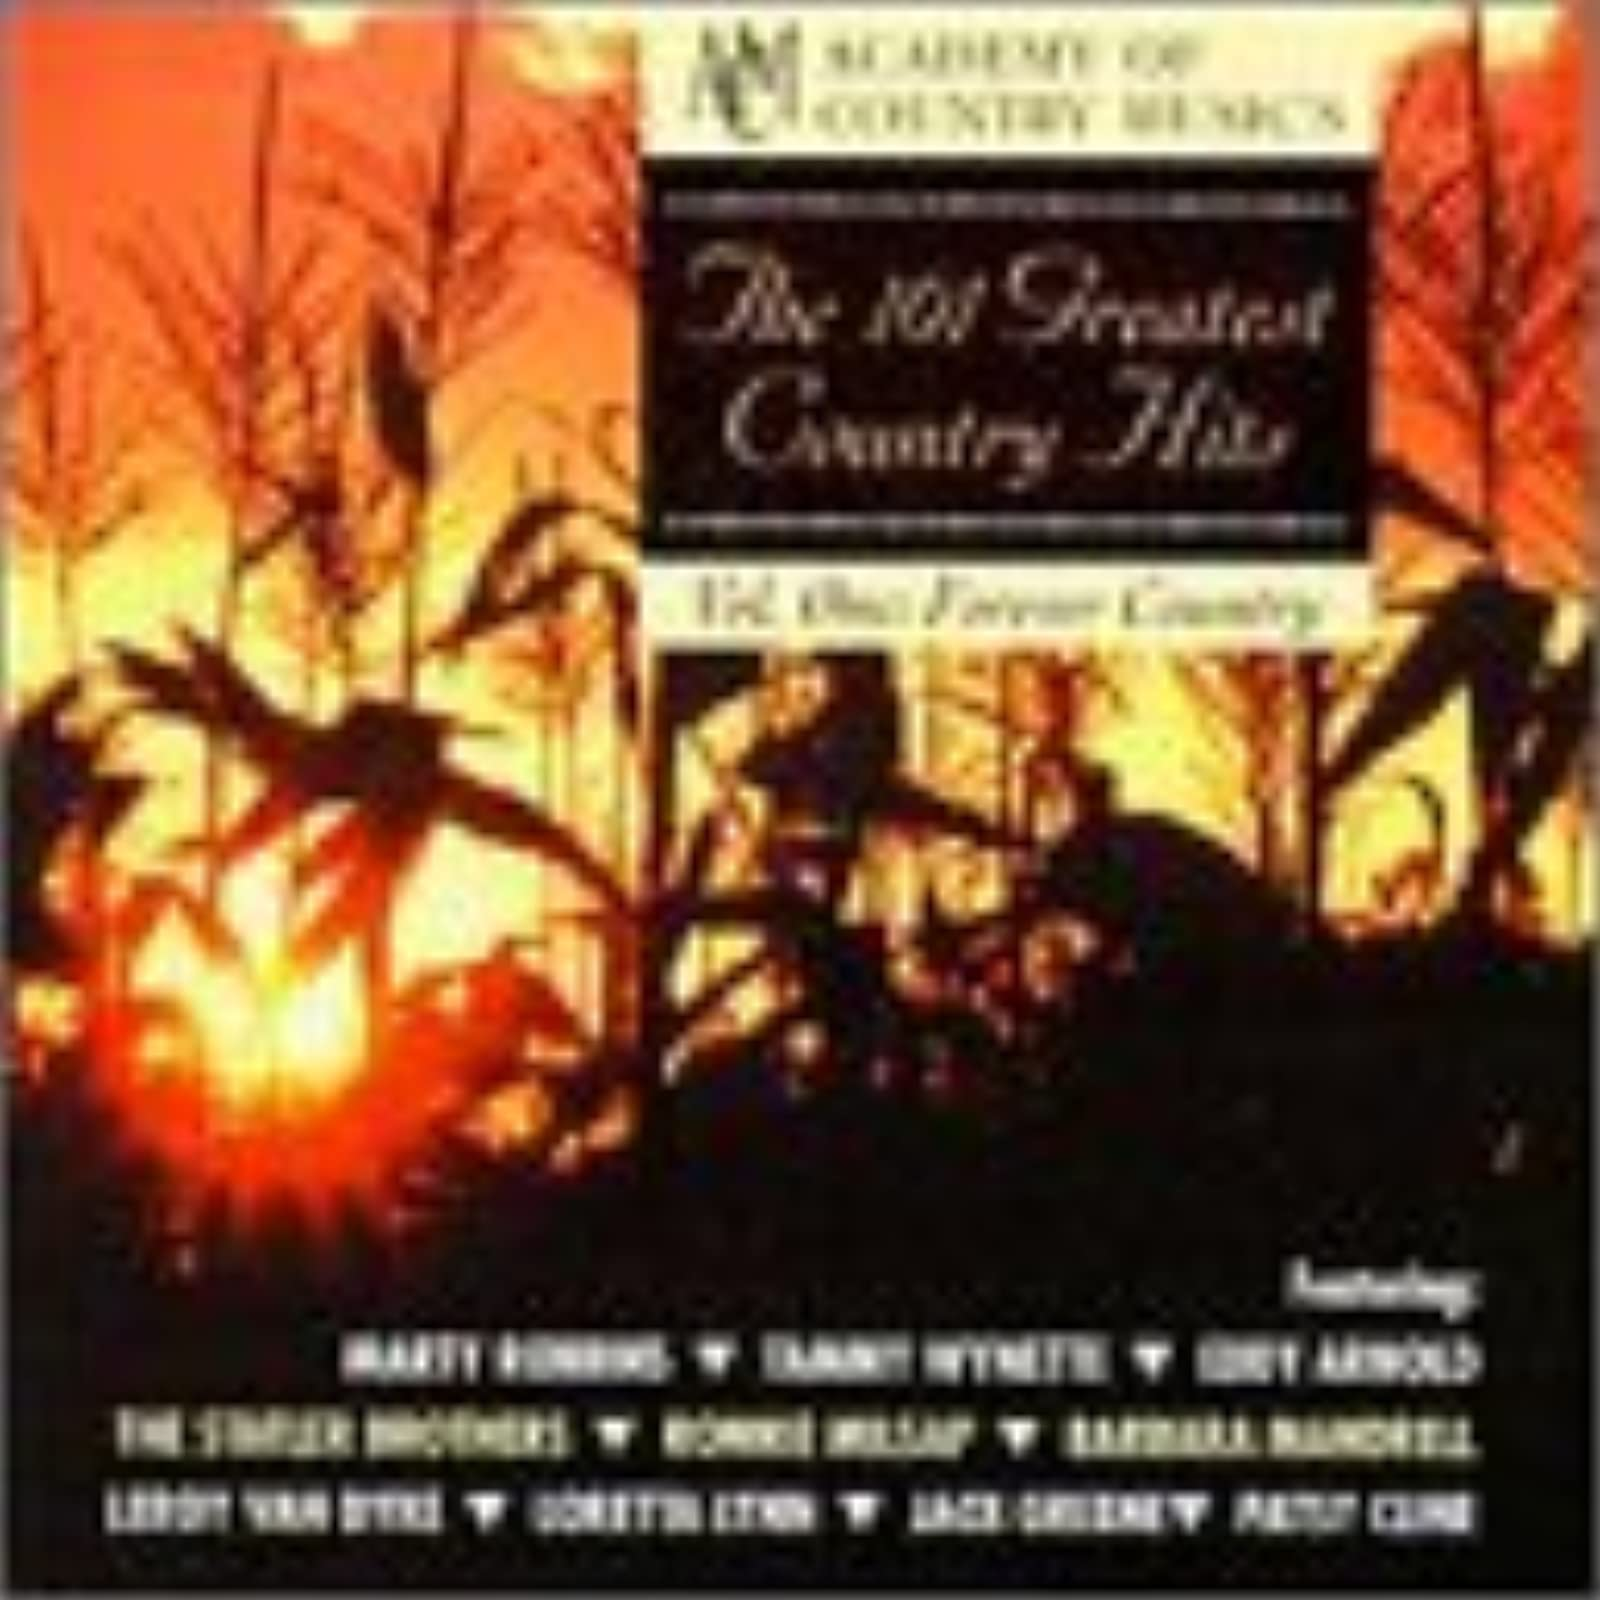 101 Greatest Country Hits Vol 1: Forever Country On Audio CD Album 199